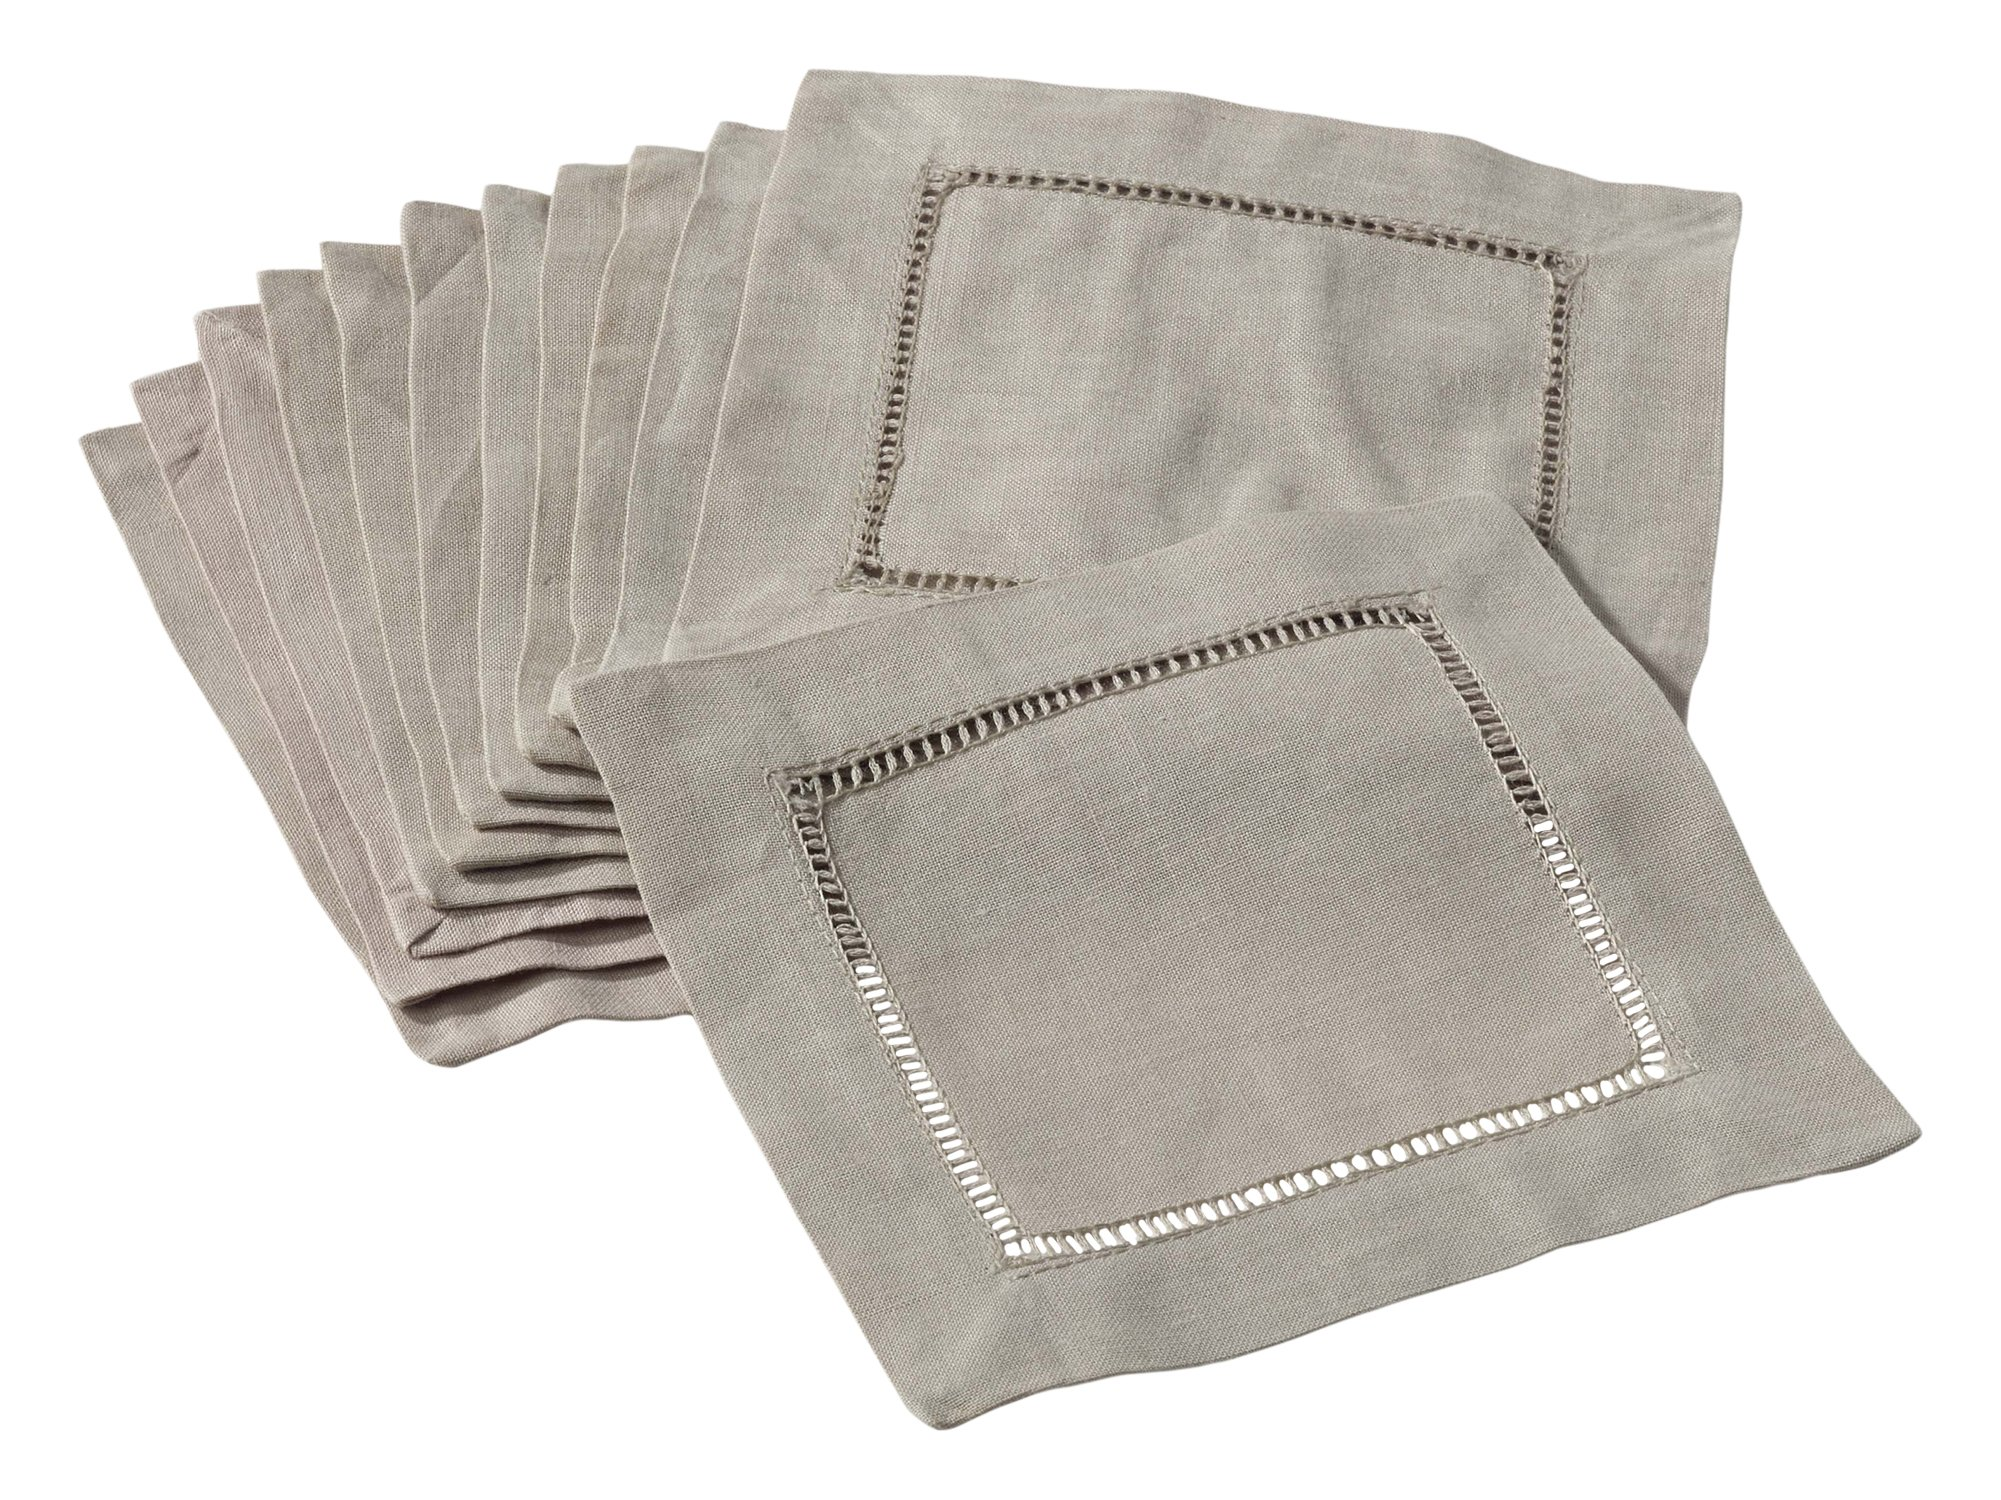 SARO LIFESTYLE 6100C.T6S 24/7 Everyday Collection Hemstitched Cocktail Napkin (Set of 12), 6'' Square, Taupe by SARO LIFESTYLE